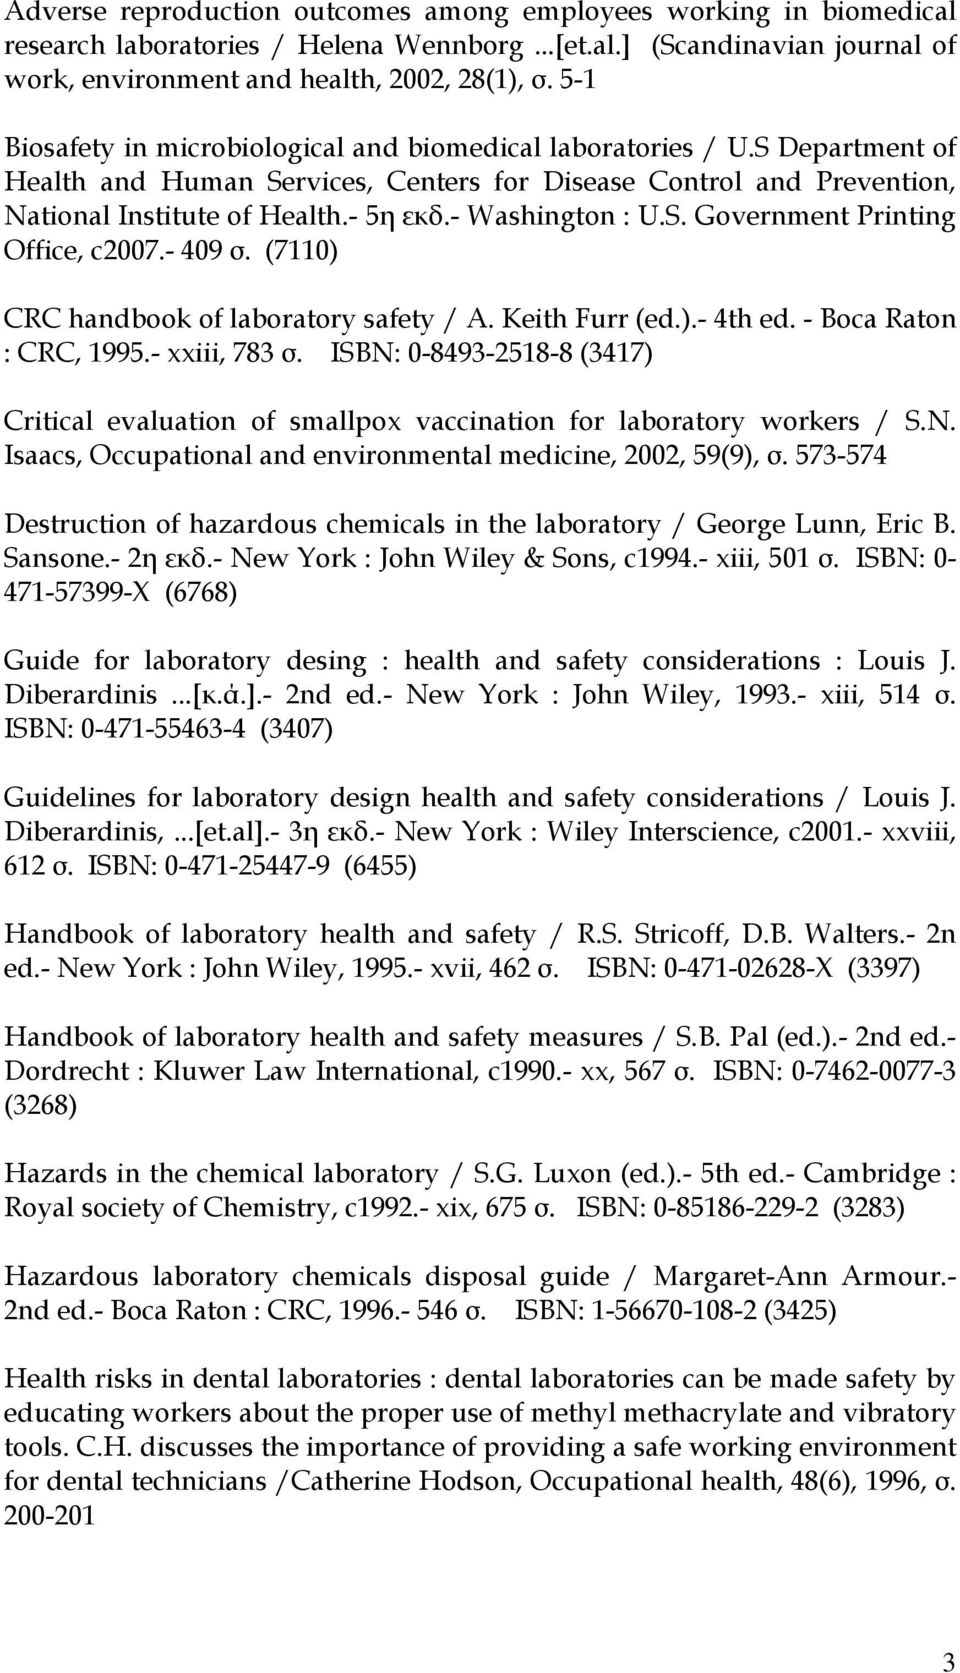 - Washington : U.S. Government Printing Office, c2007.- 409 σ. (7110) CRC handbook of laboratory safety / A. Keith Furr (ed.).- 4th ed. - Boca Raton : CRC, 1995.- xxiii, 783 σ.